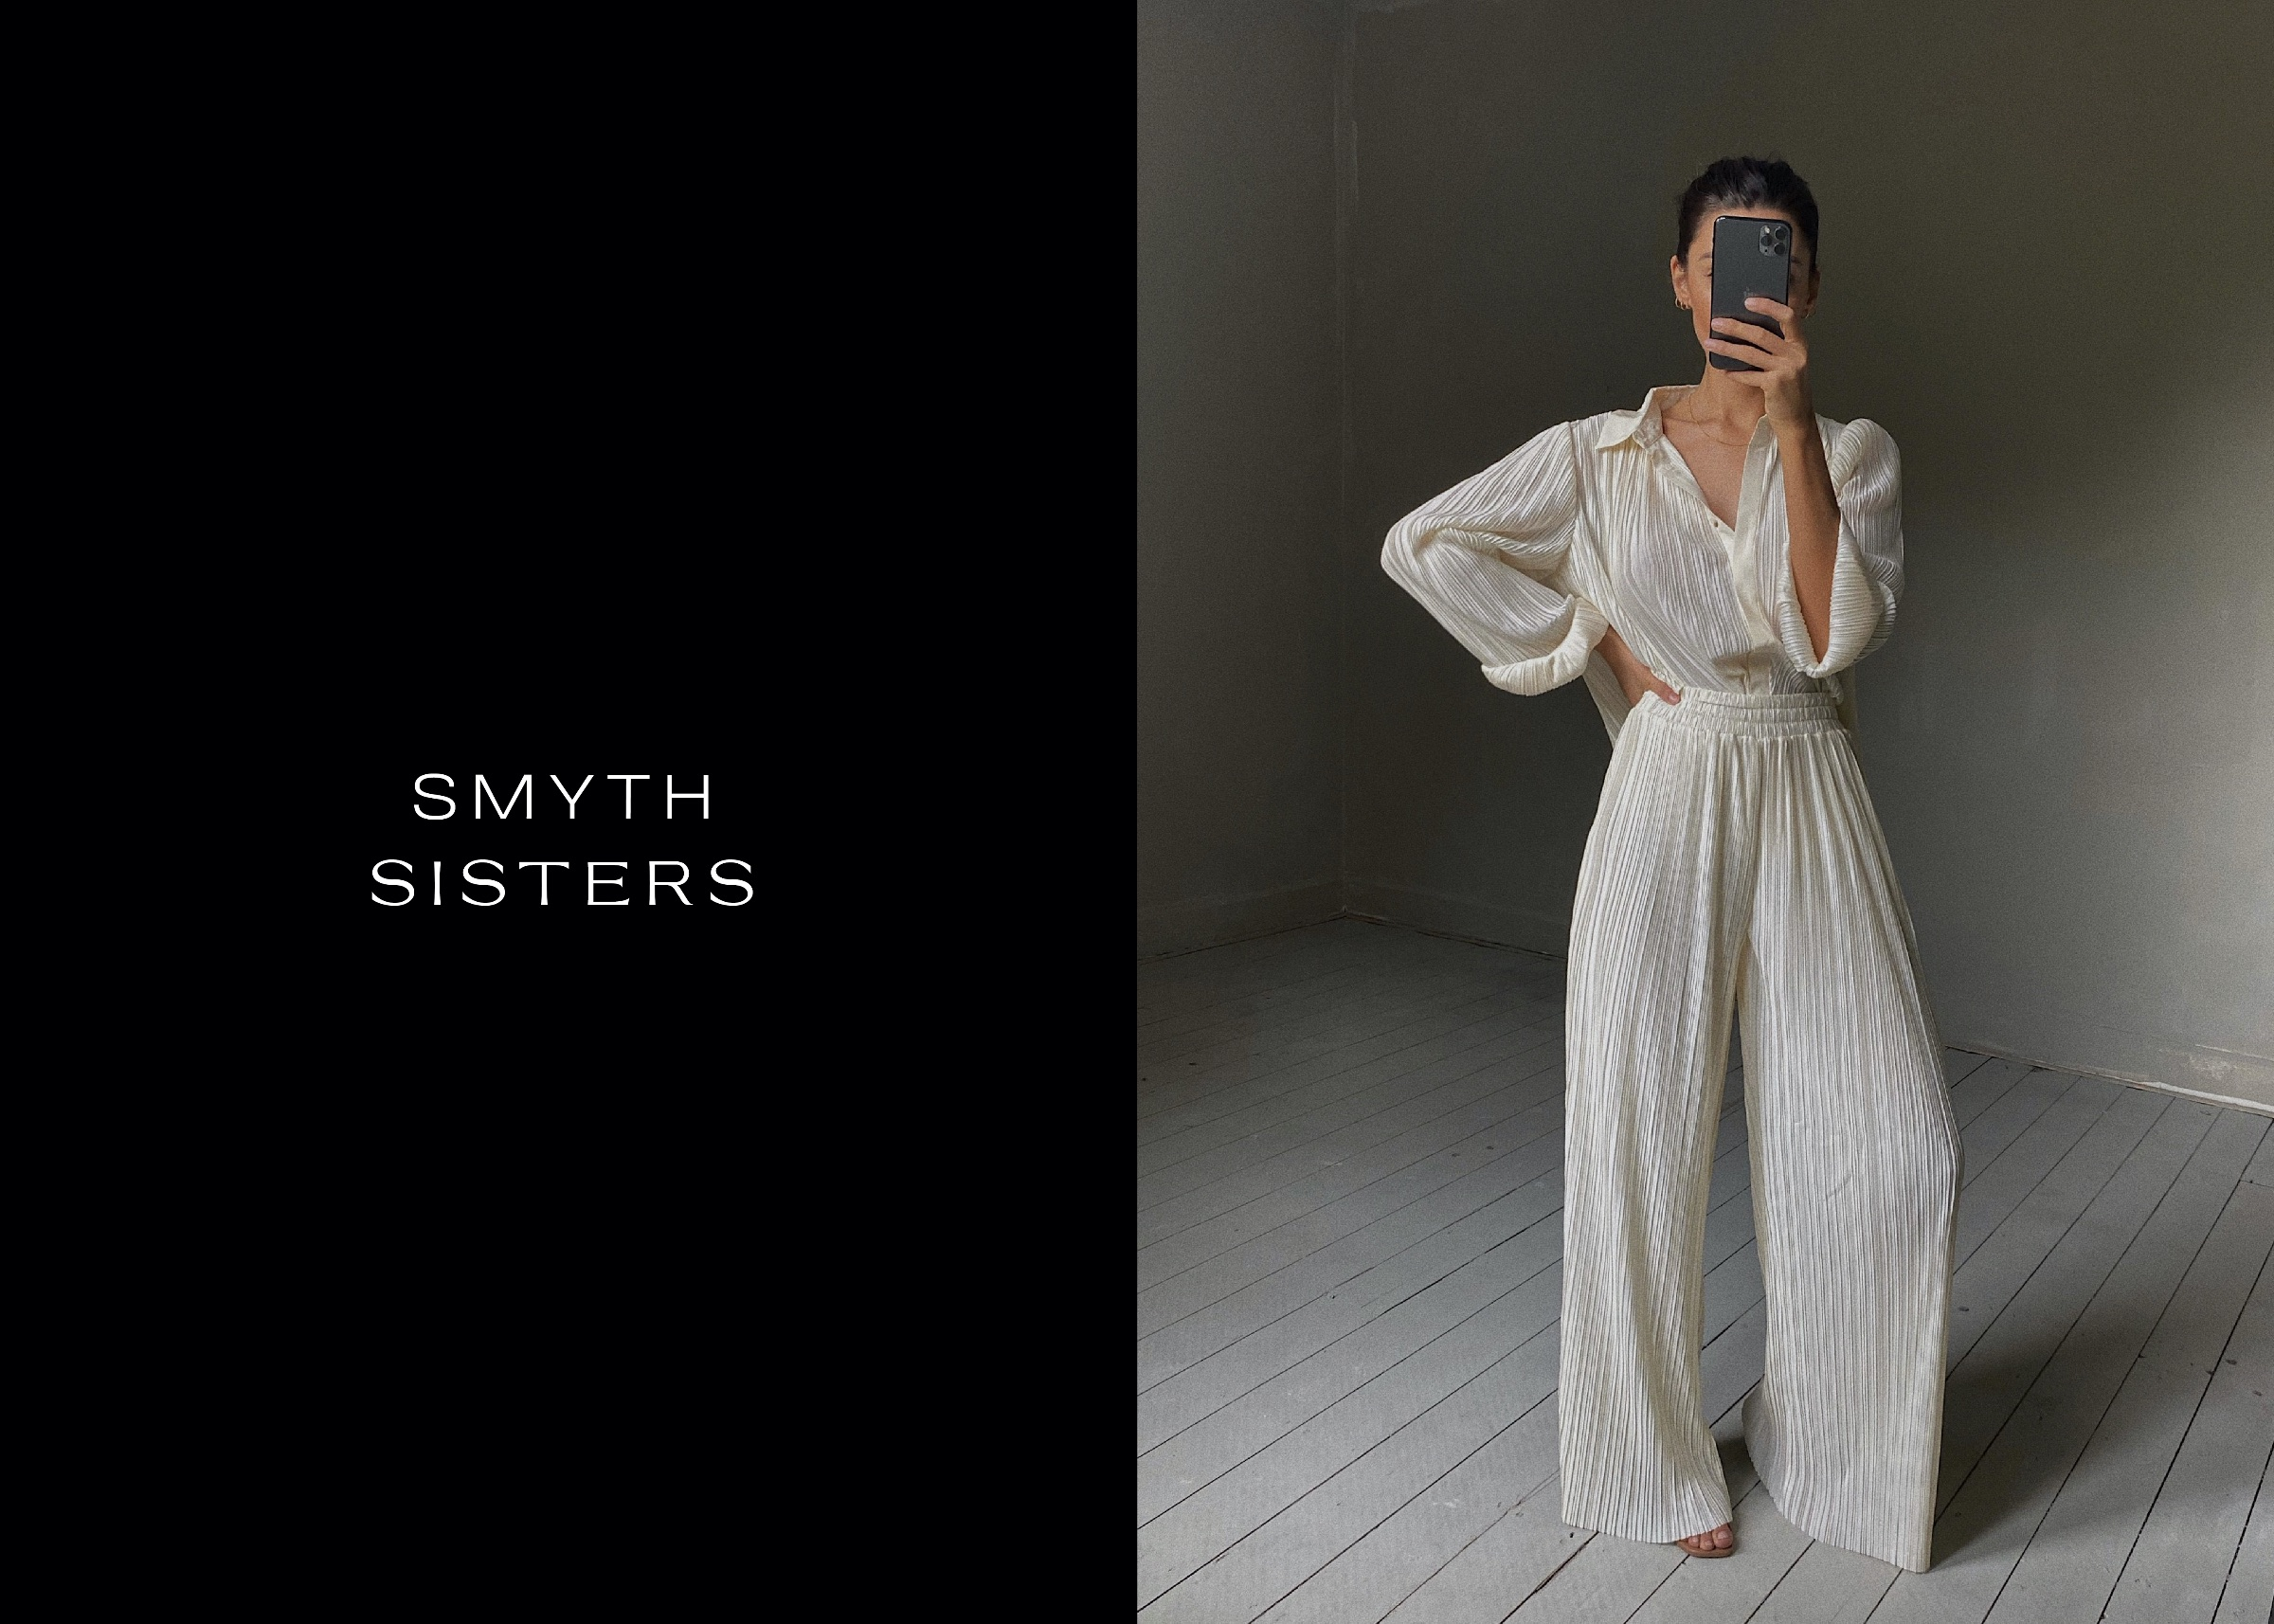 Smyth Sisters Branding and Website Design by Crown Creative